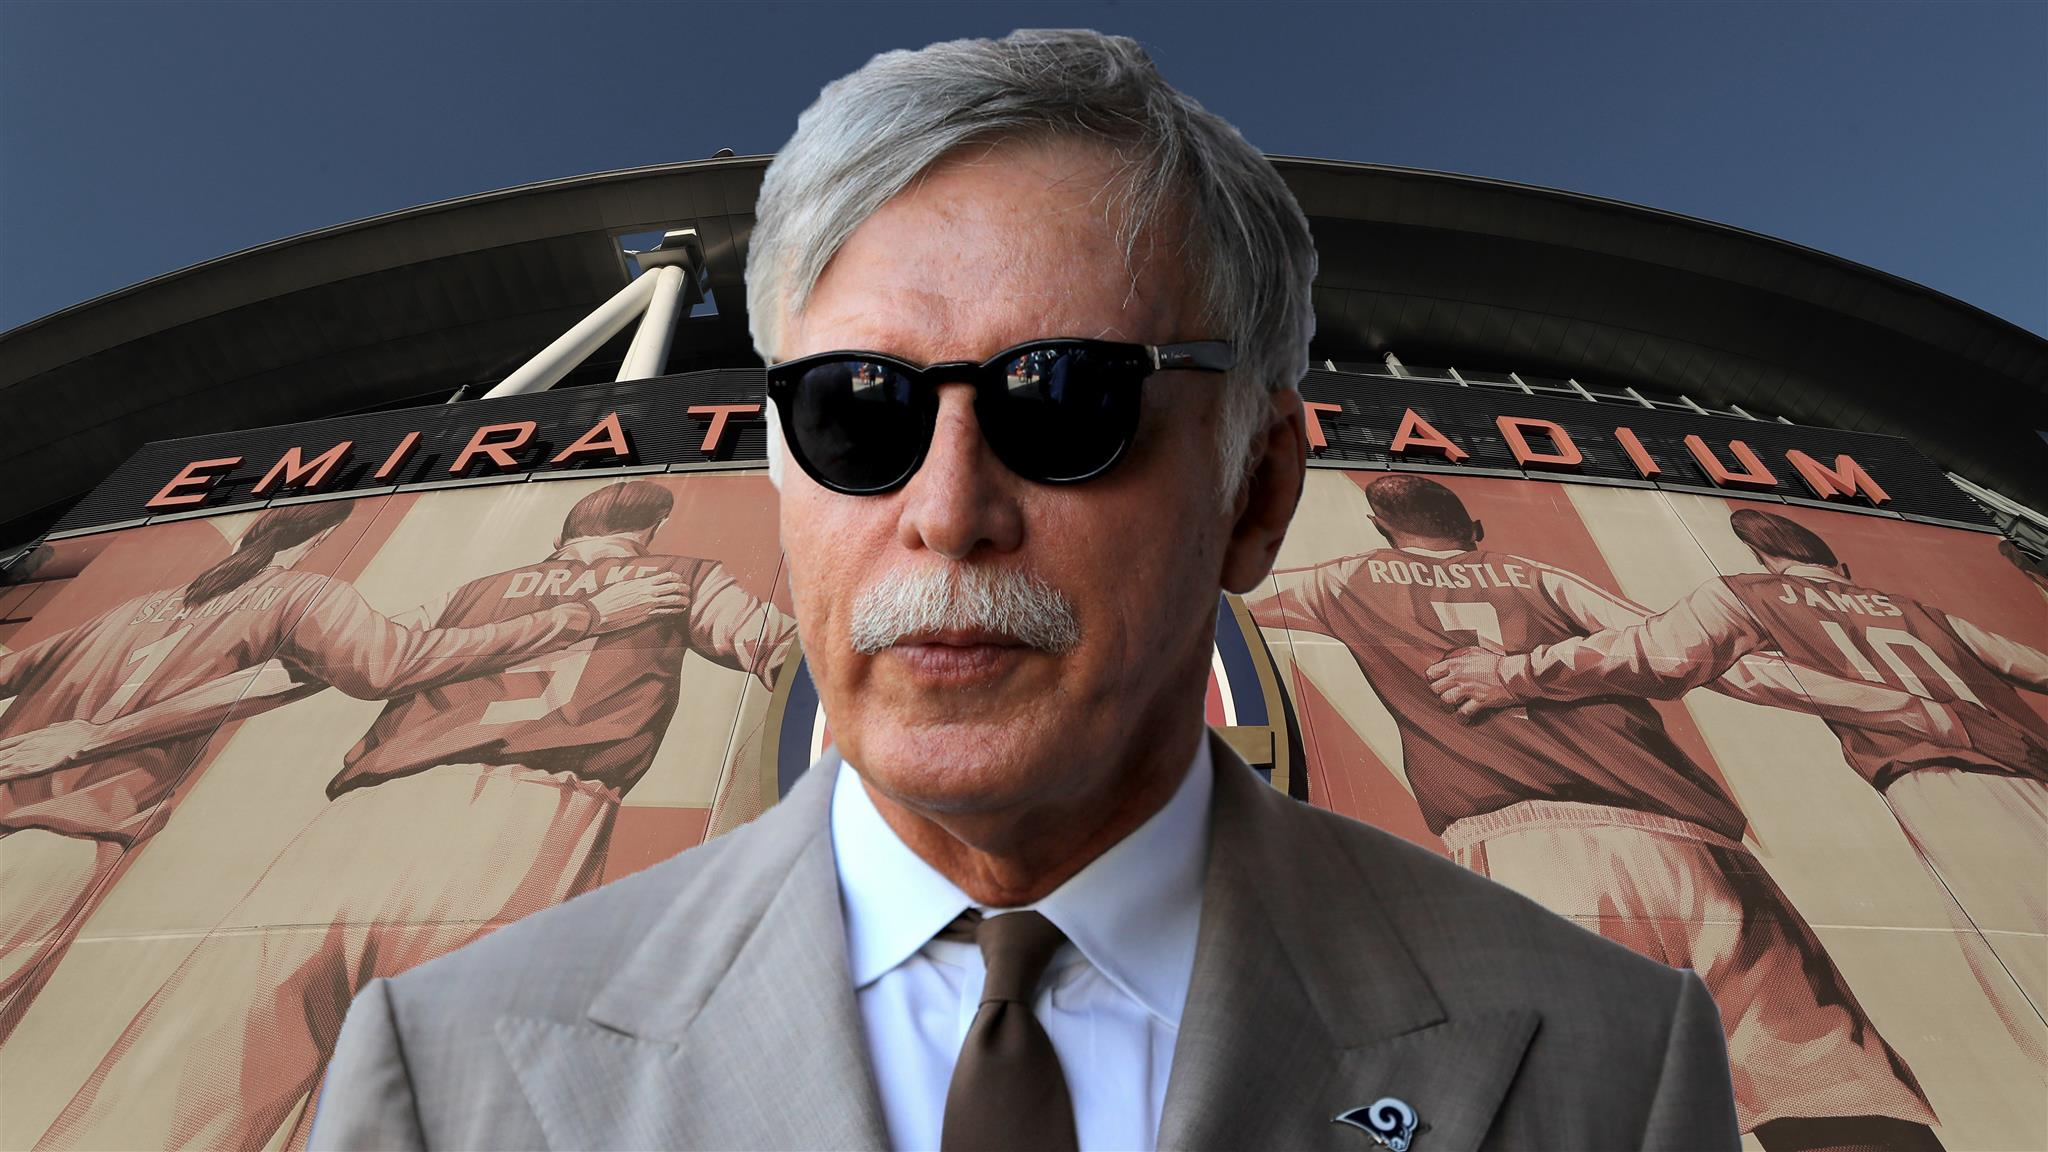 Arsenal Supporters' Trust respond to Stan Kroenke takeover bid